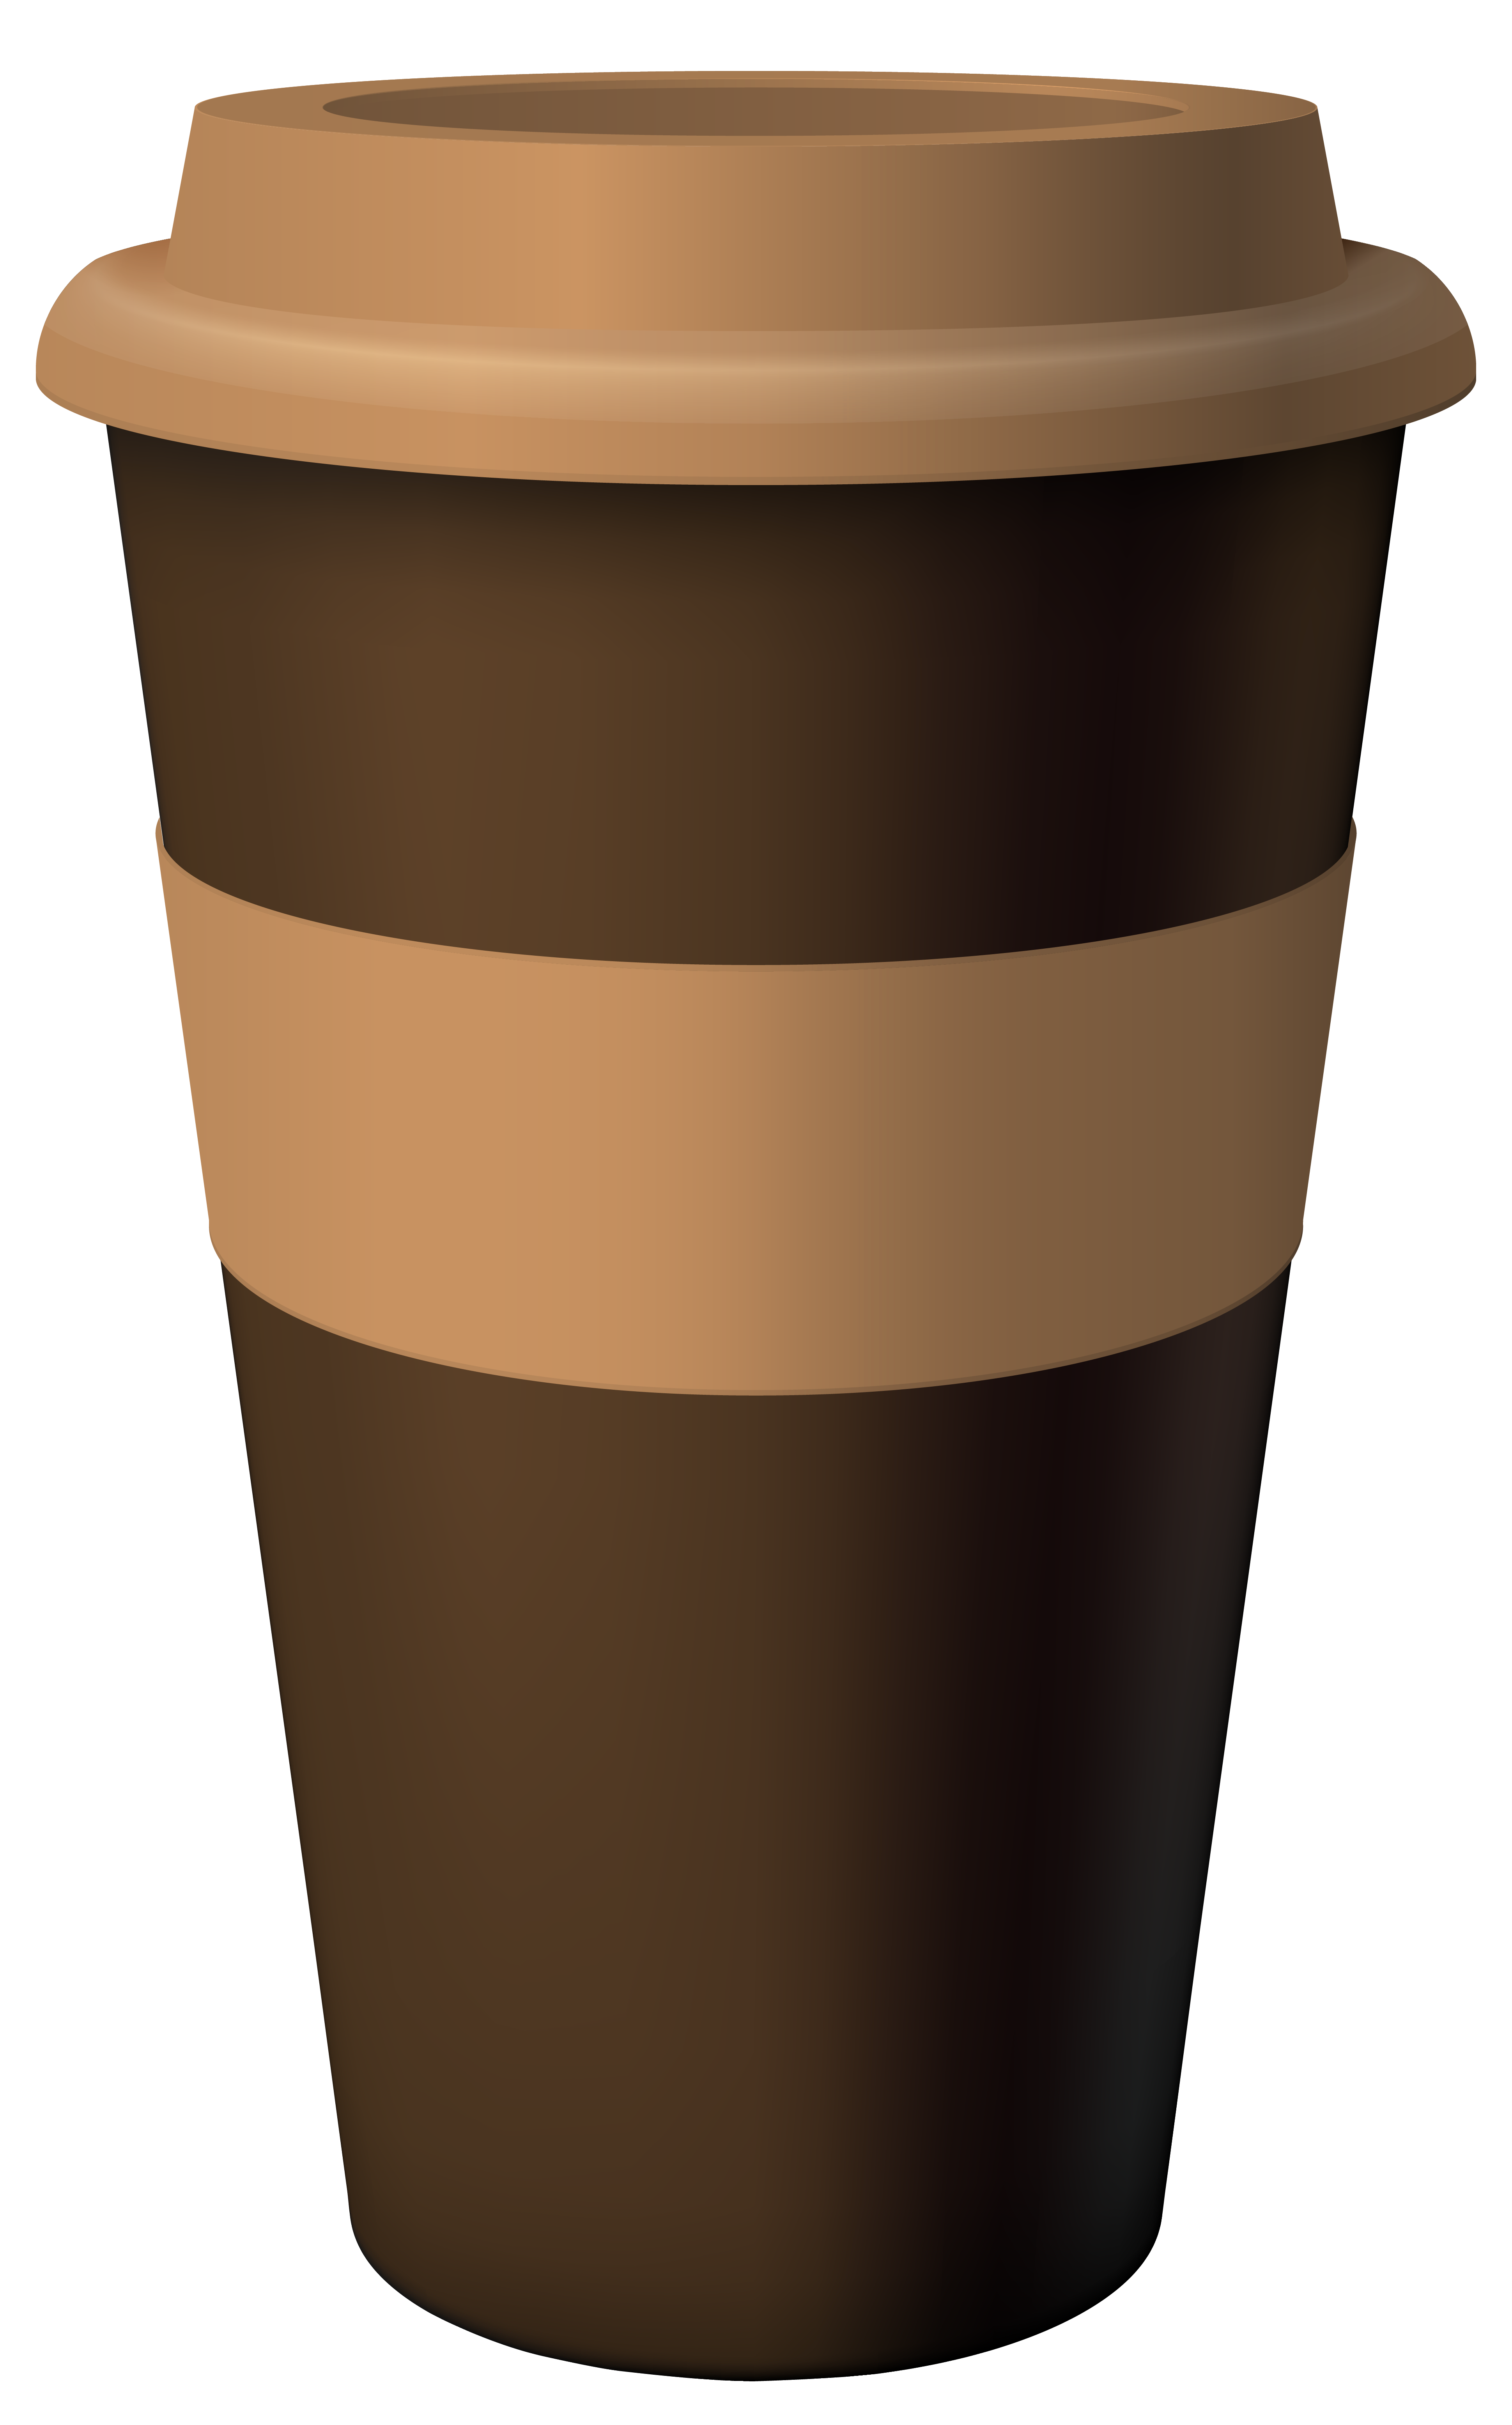 Hot clipart coffe. Brown coffee cup png